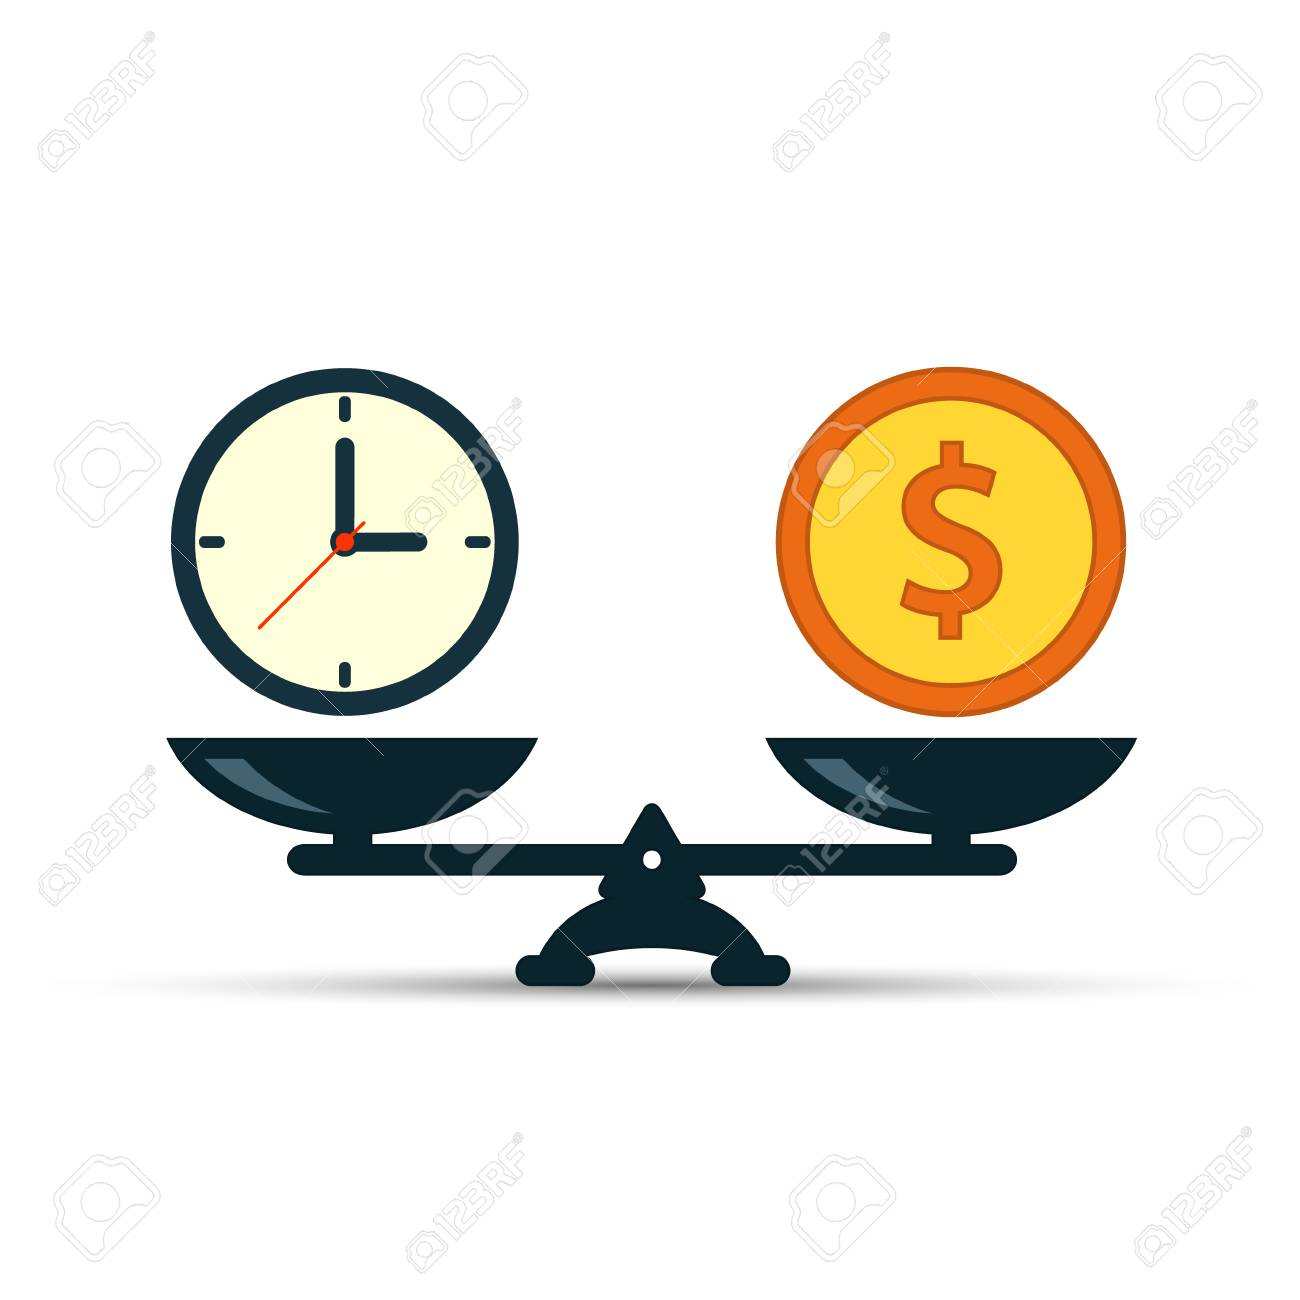 hight resolution of time is money on scales icon money and time balance on scale weights with